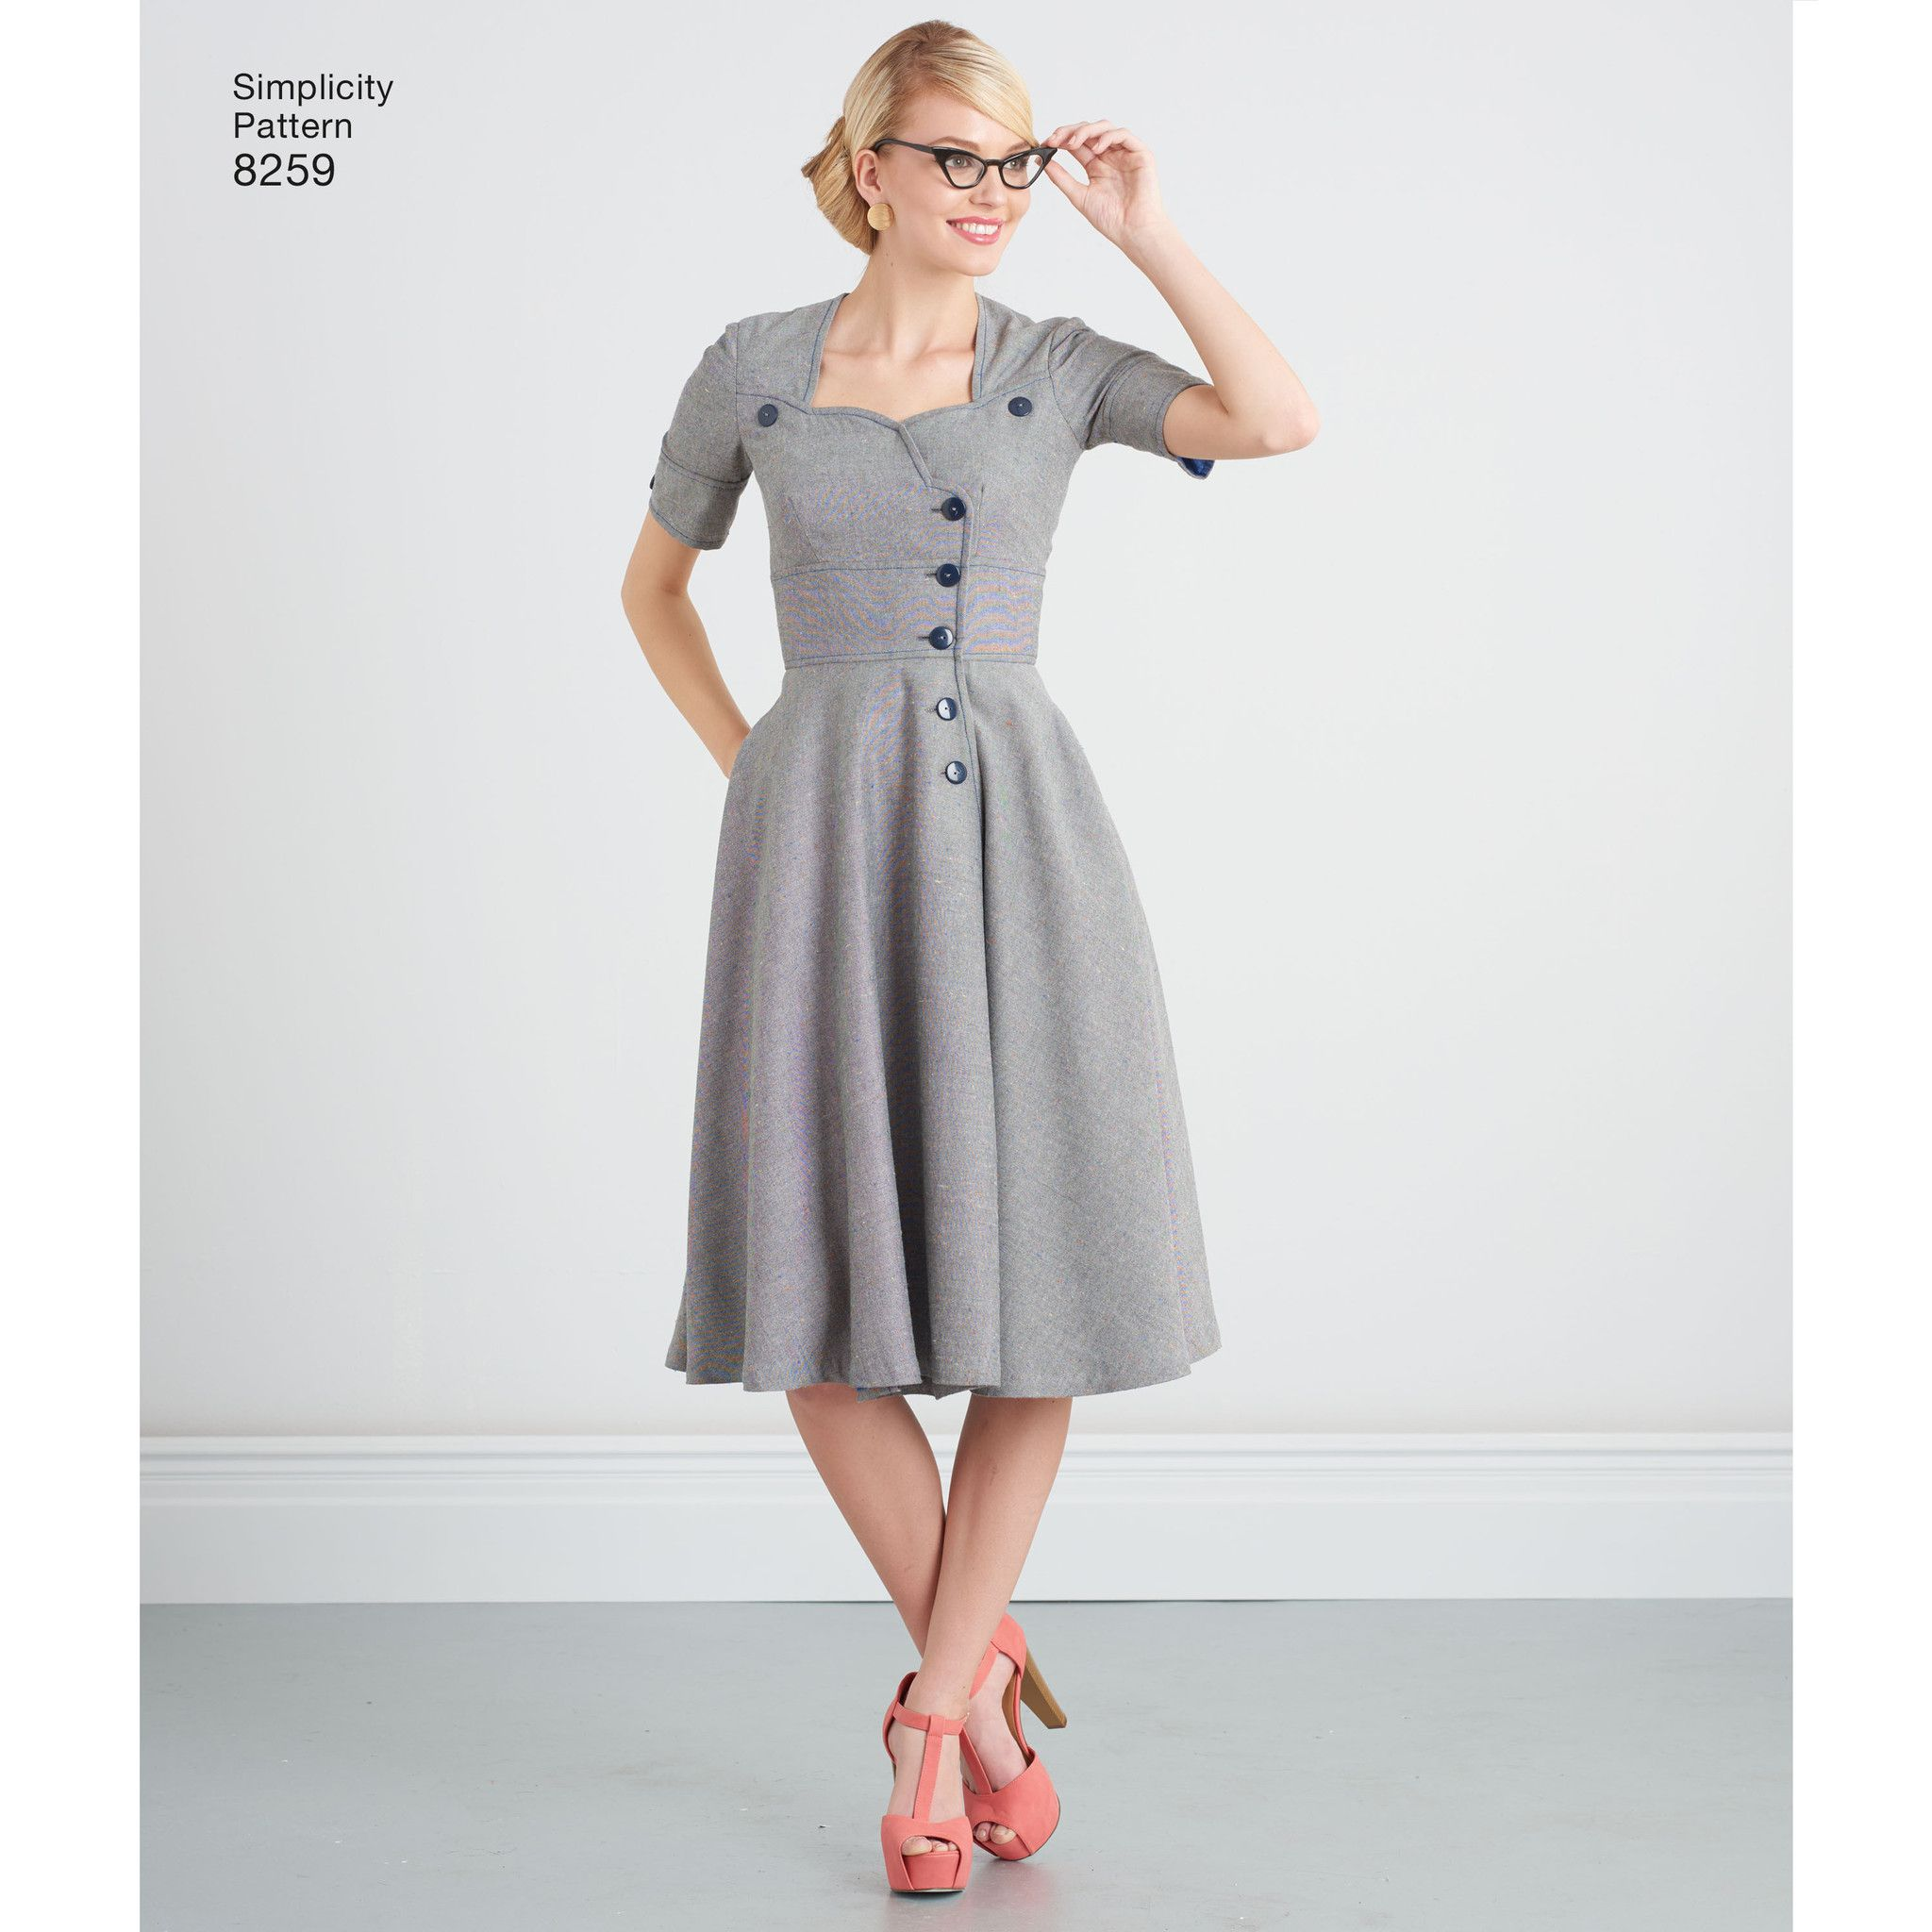 S8259 Misses\' Sew Chic Button Front Dresses Simplicity Pattern ...